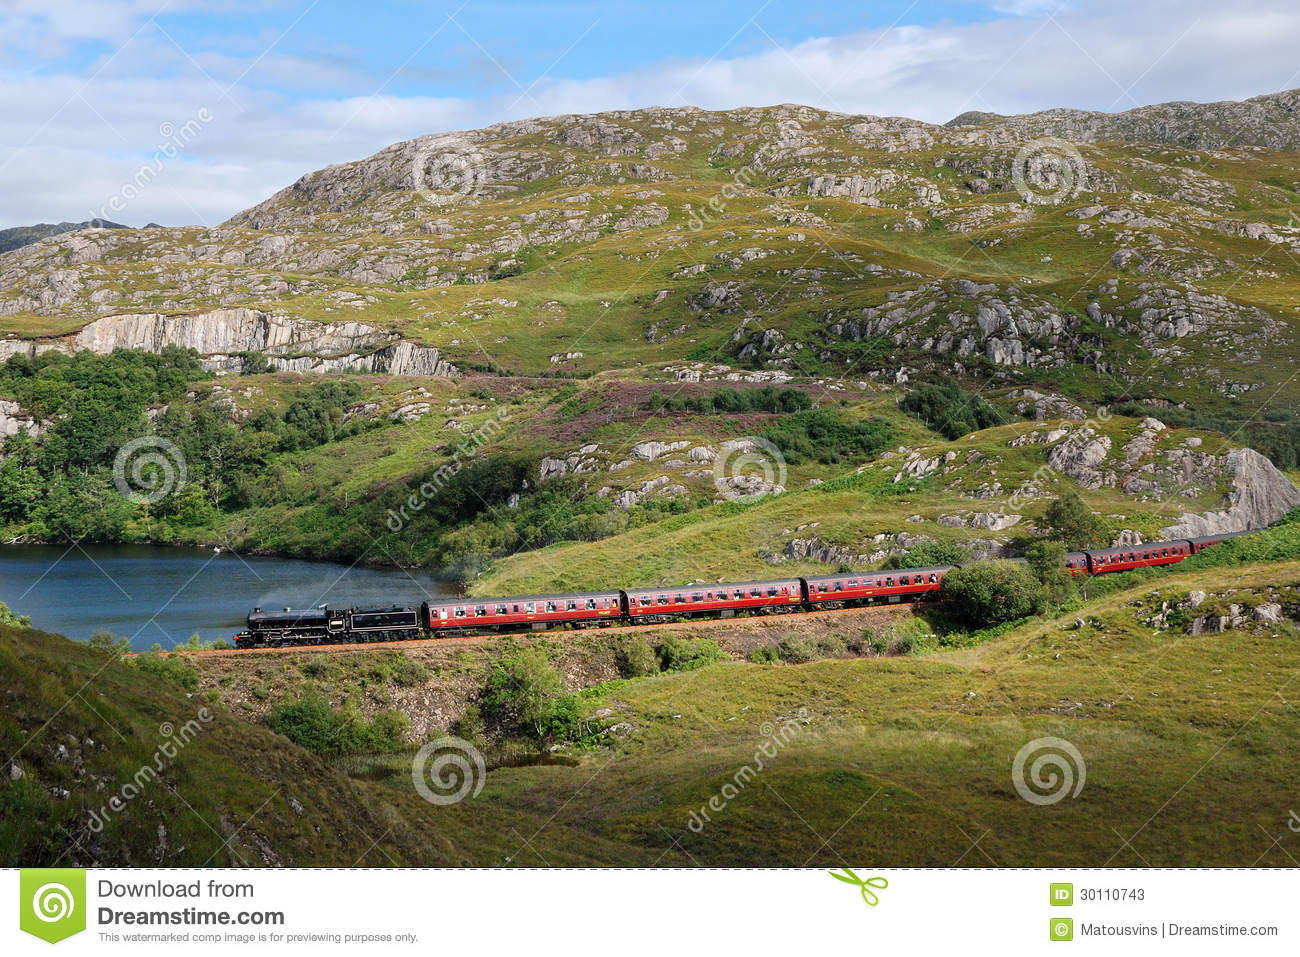 Harry Potter steam train stock image  Image of potter - 30110743